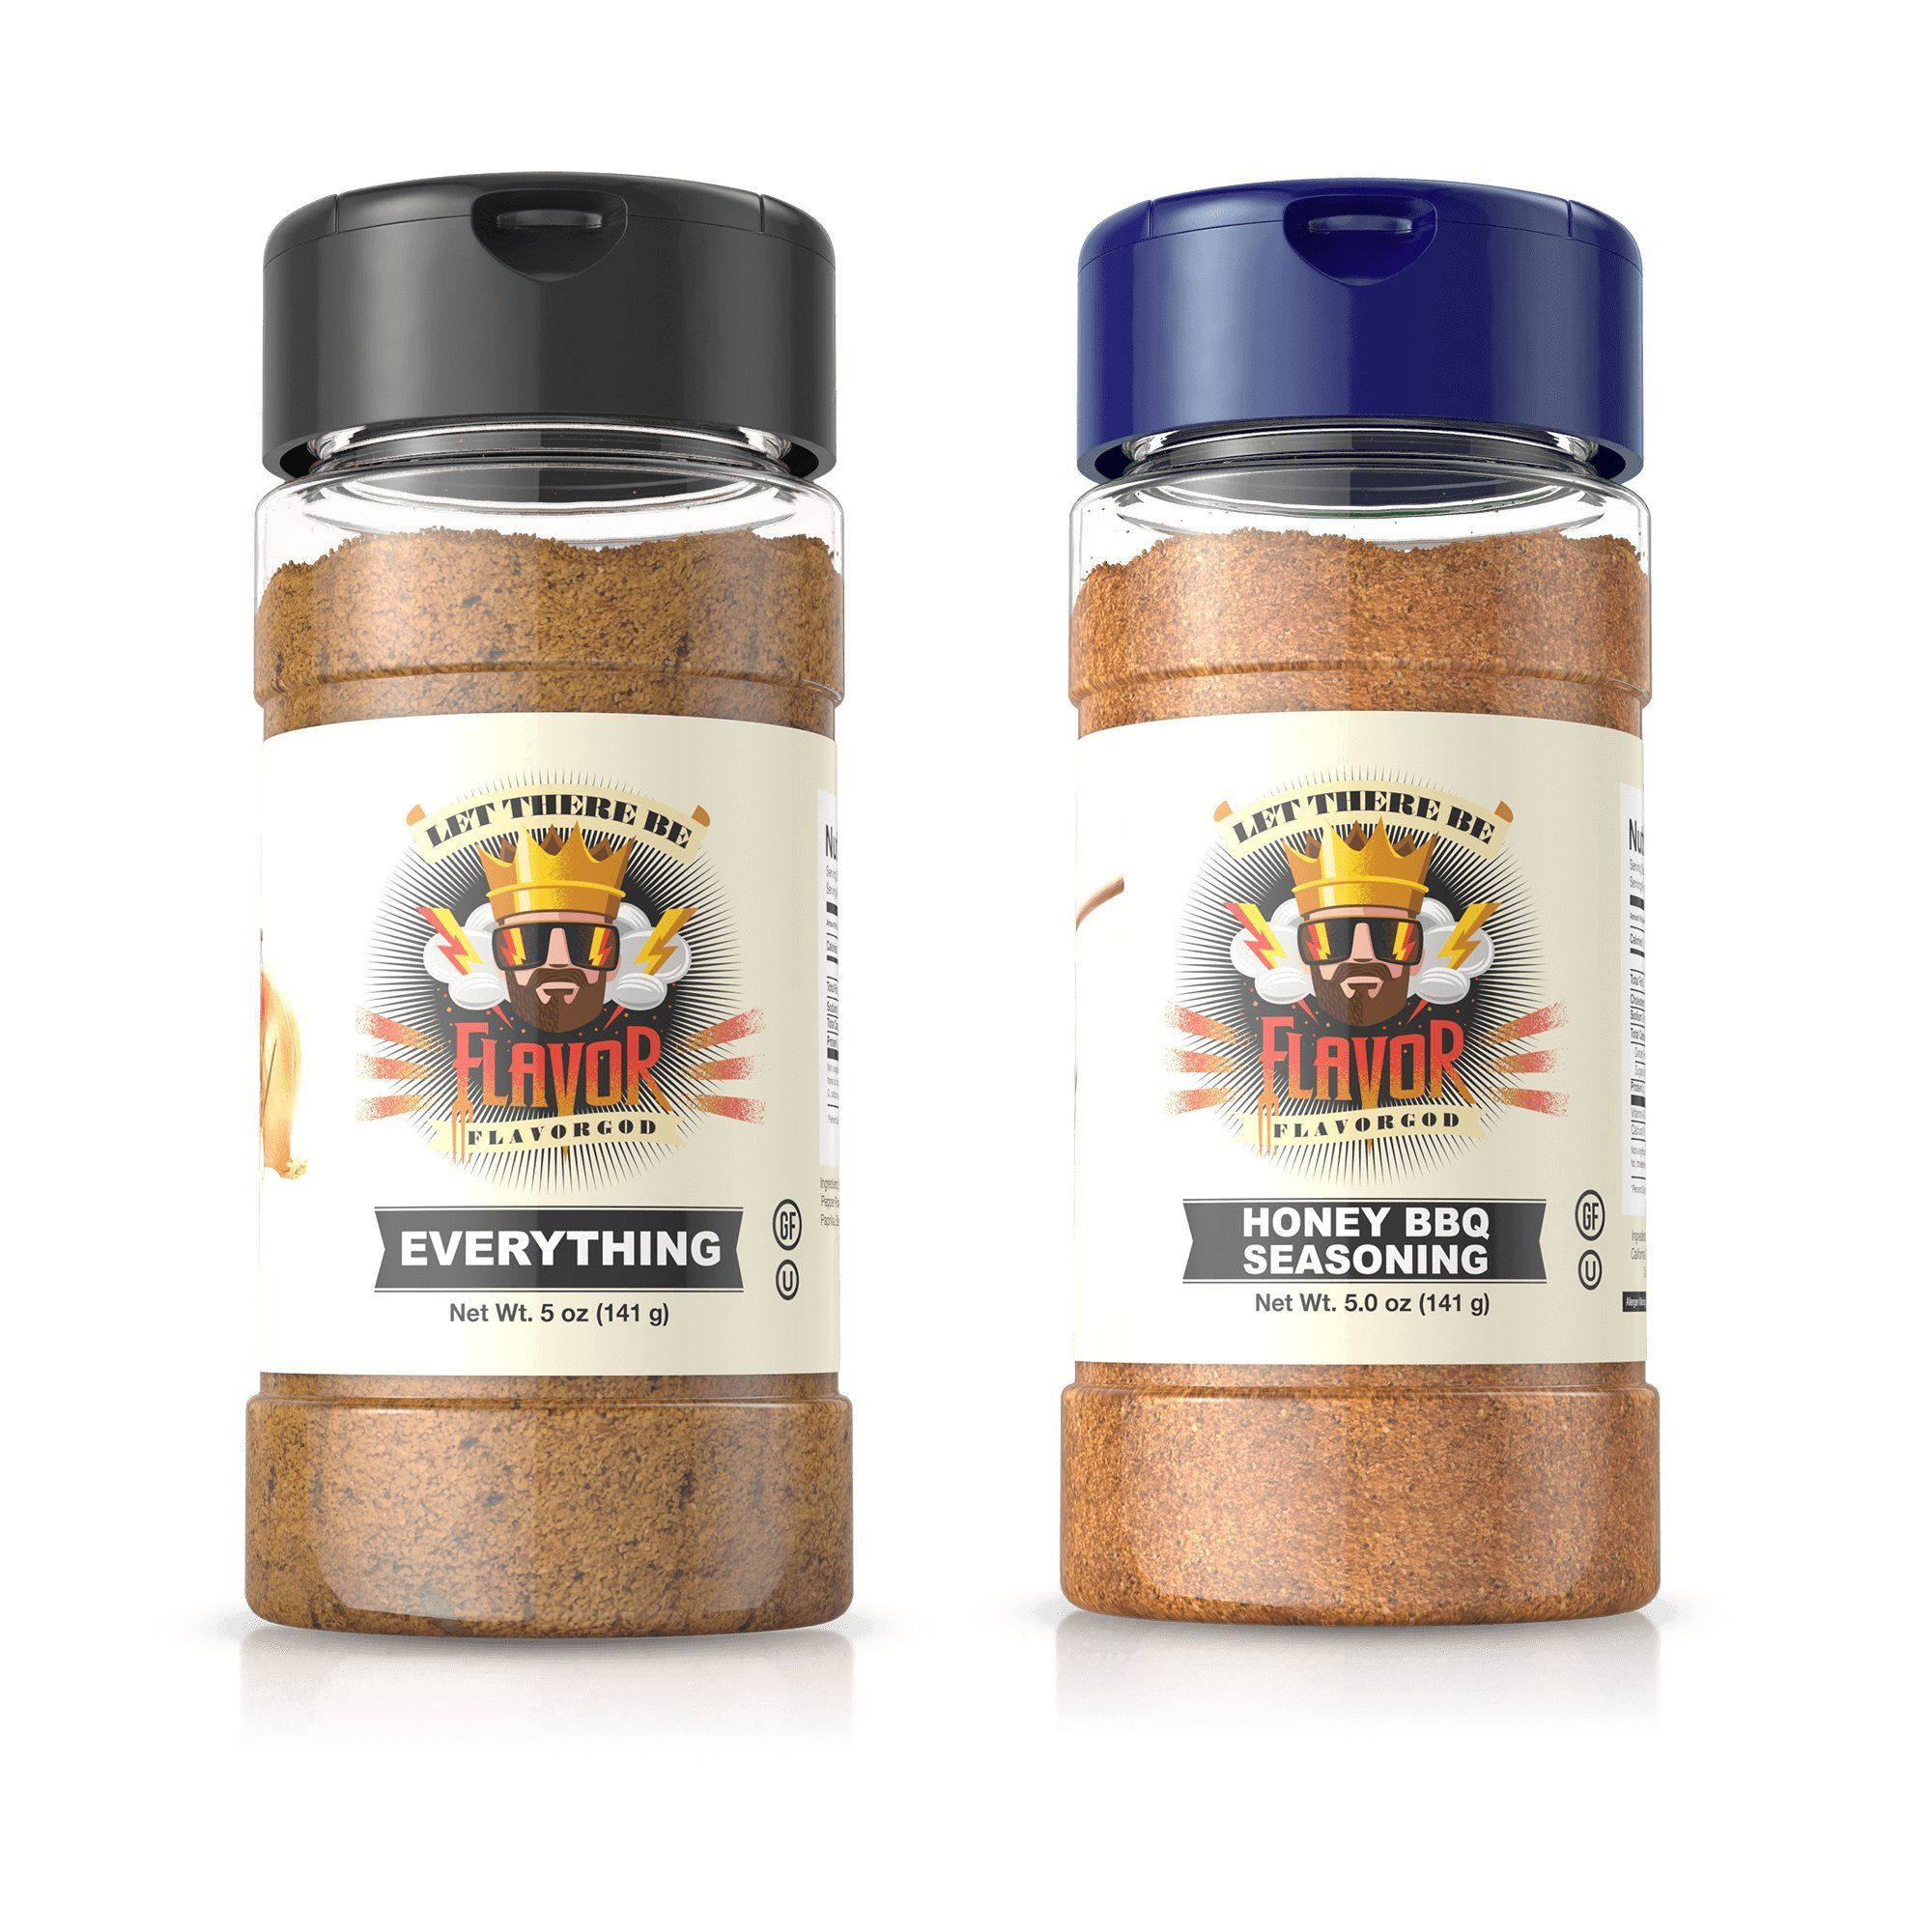 Flavor God Seasonings - BBQ Grilling Duo - Everything & Honey BBQ (Gluten Free, GMO Free, MSG Free, Low Sodium, Paleo Friendly)